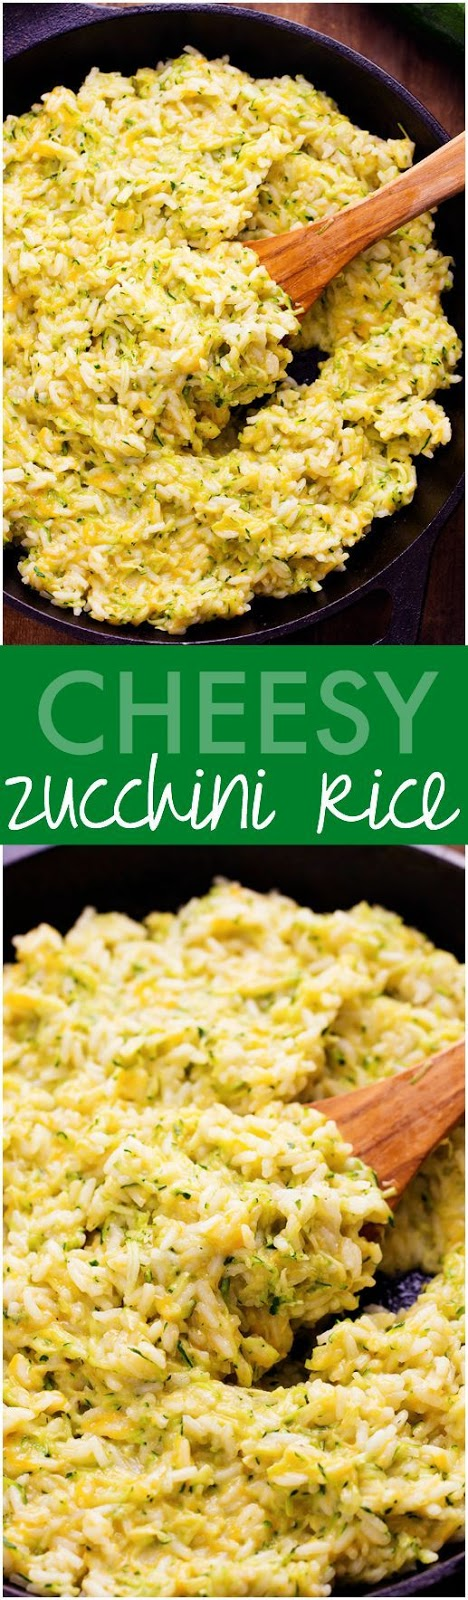 I love zucchini season.  And I love that I have an over abundance in my backyard.  And I especially love being able to sneak it into different recipes so that my kids will eat it.  Like this one.  We usually have rice for a side.  So why not make it amazing by adding cheese and zucchini!?  We have now made this recipe 3 times since.  I am telling you.  It is one of the best sides that we have ever had!  Everyone gobbled this down including the baby.